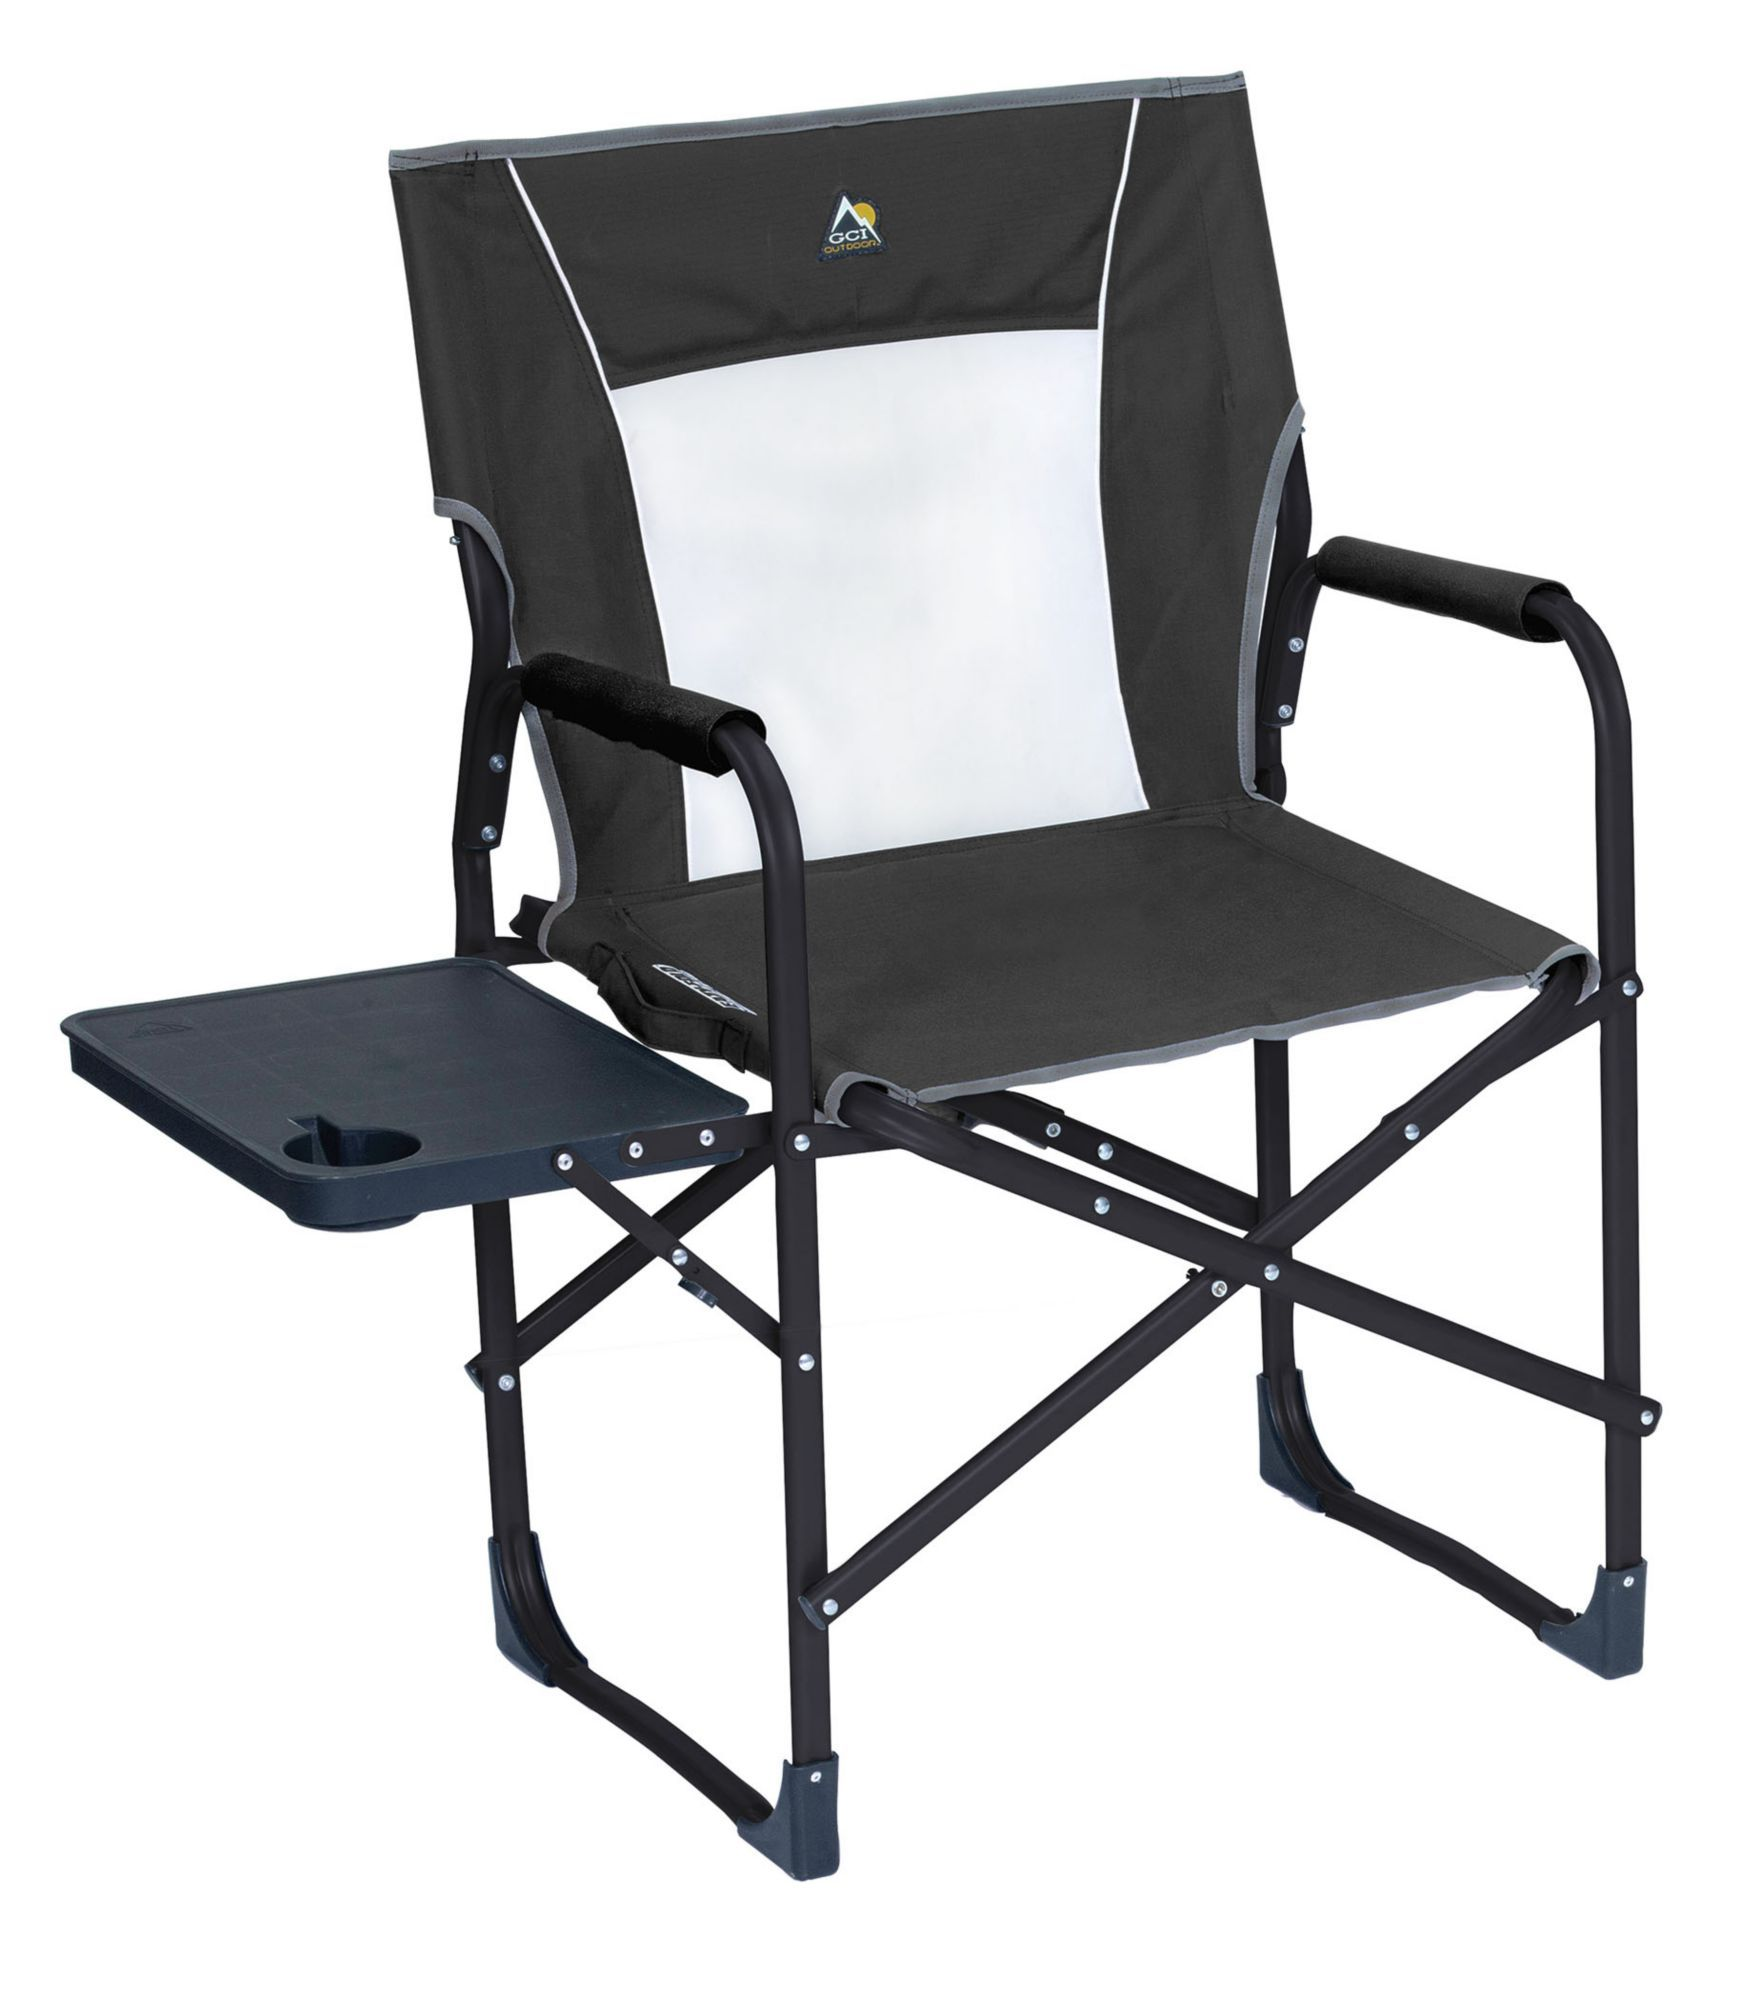 Tremendous Gci Outdoor Slim Fold Directors Chair Products In 2019 Spiritservingveterans Wood Chair Design Ideas Spiritservingveteransorg